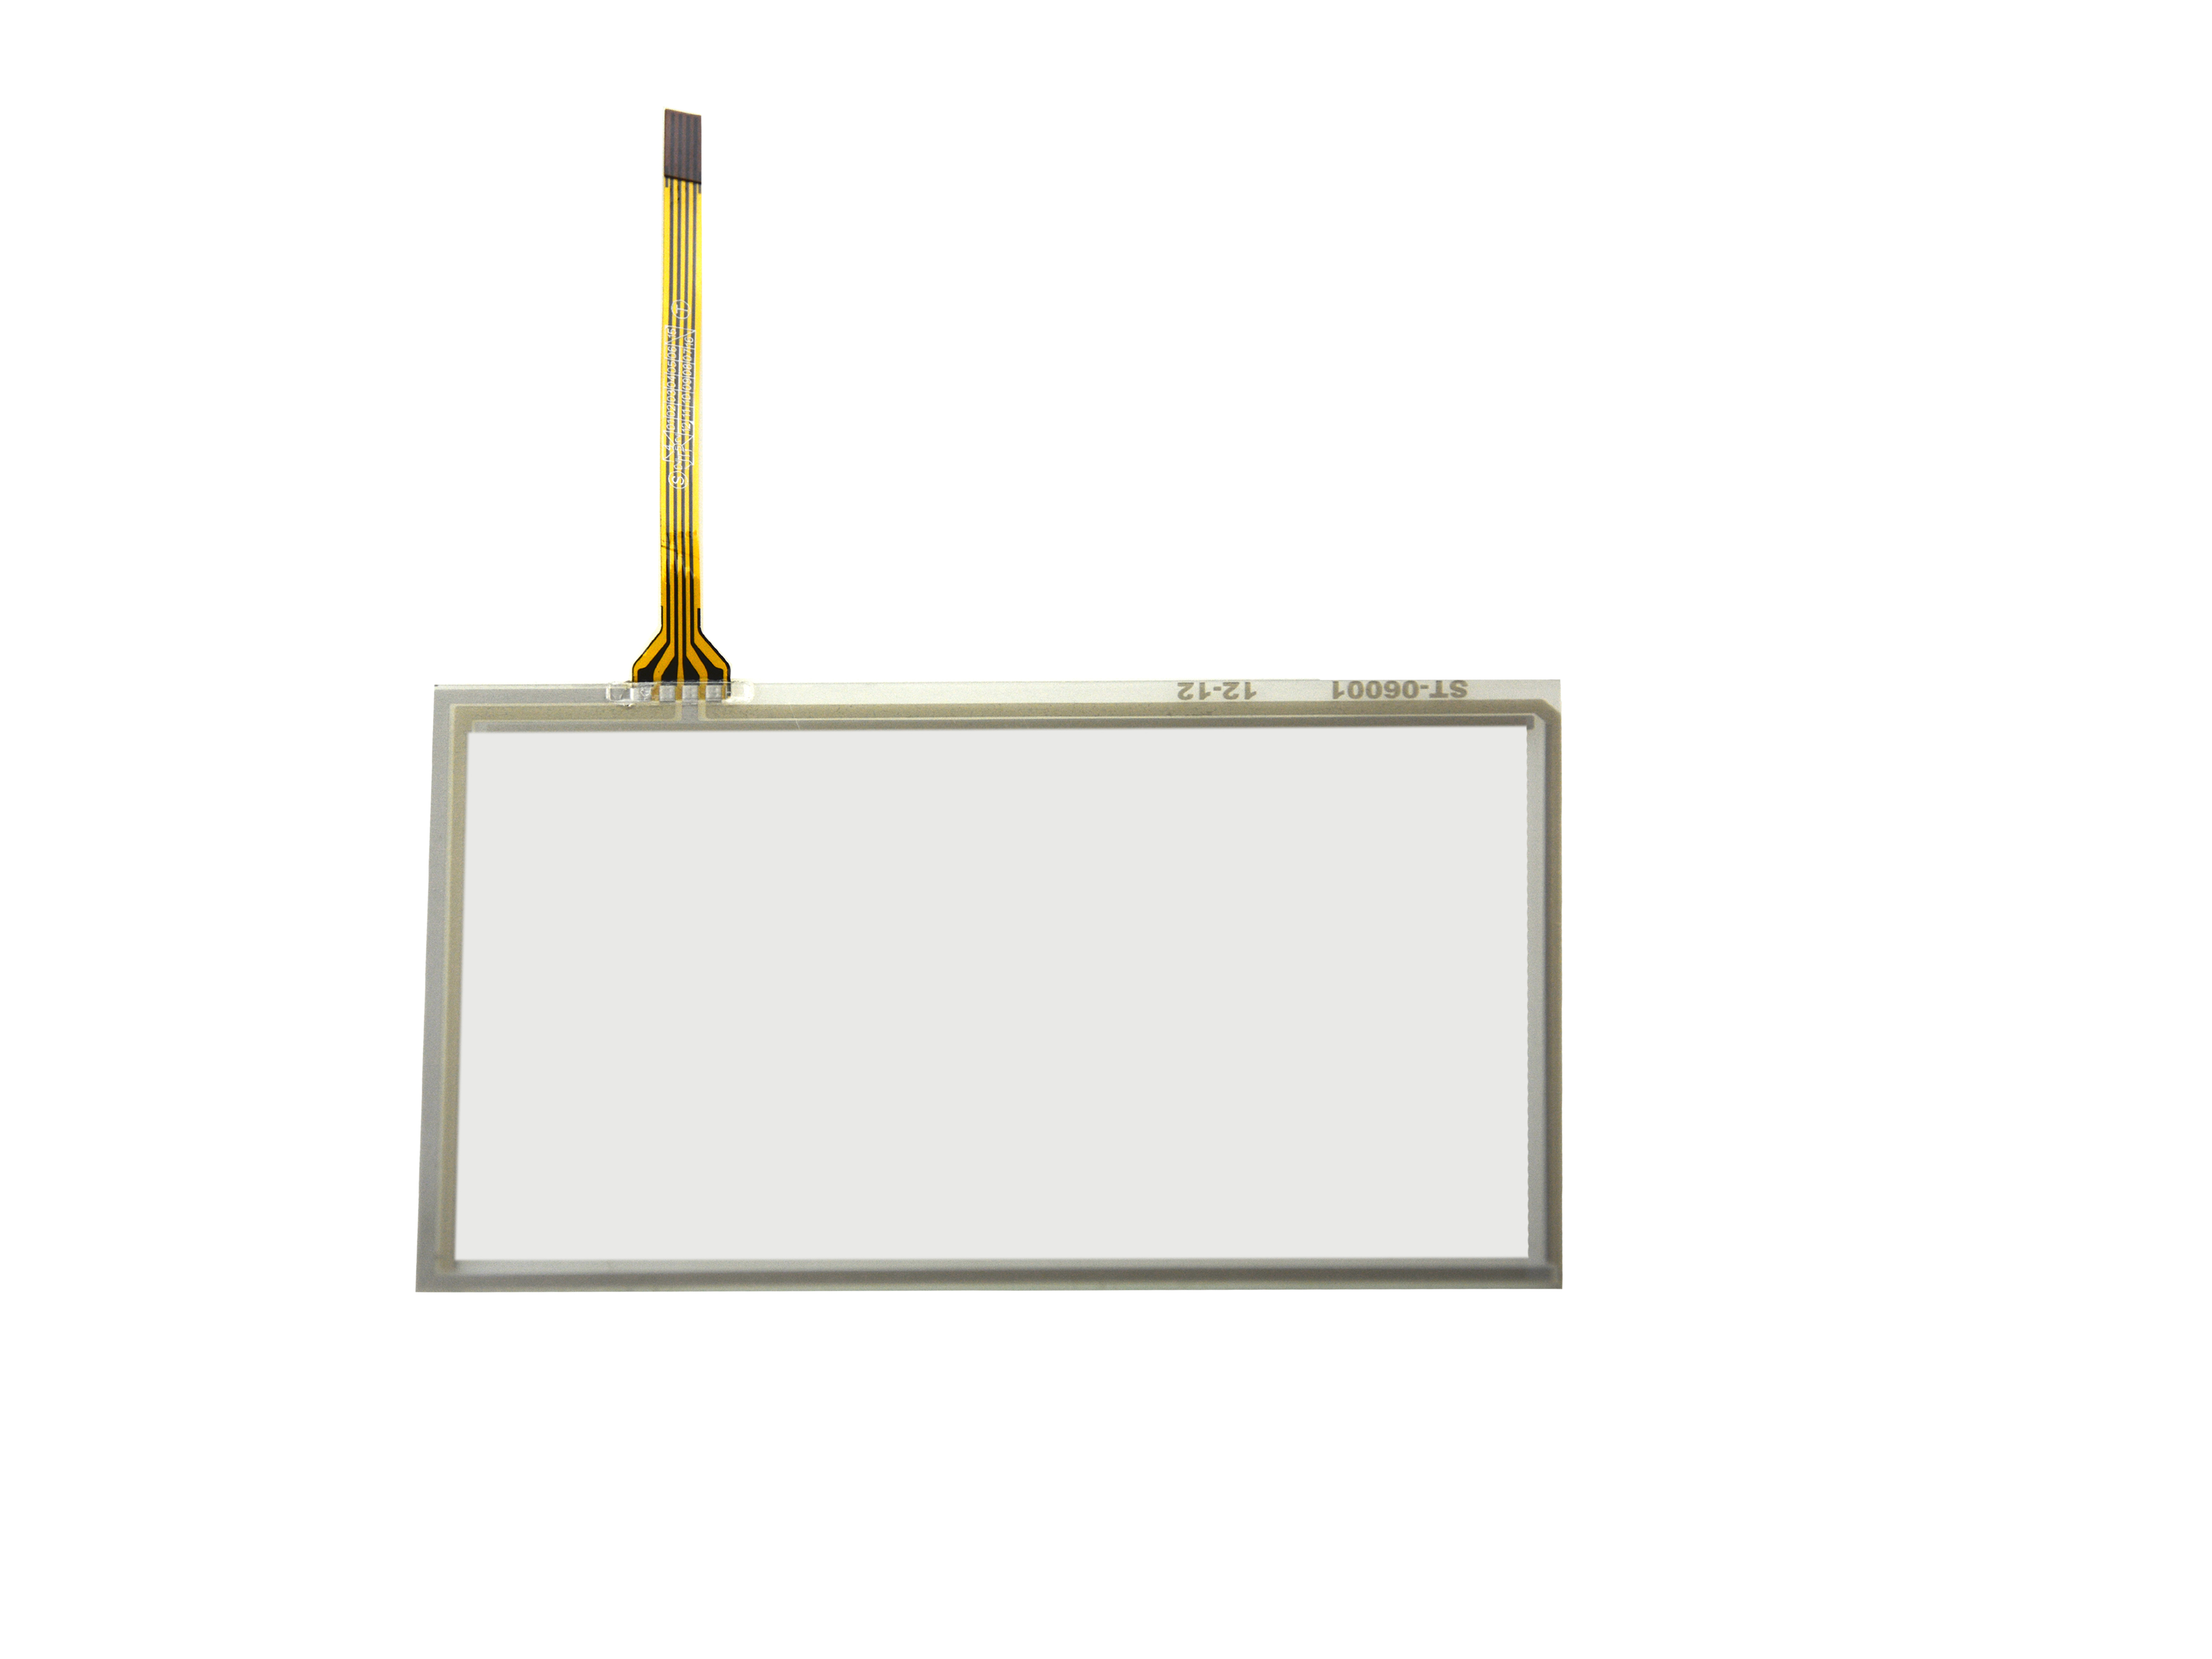 6inch 4 Wire Resistive Touch Panel 145mm x 87mm Handwriting Screen For GPS